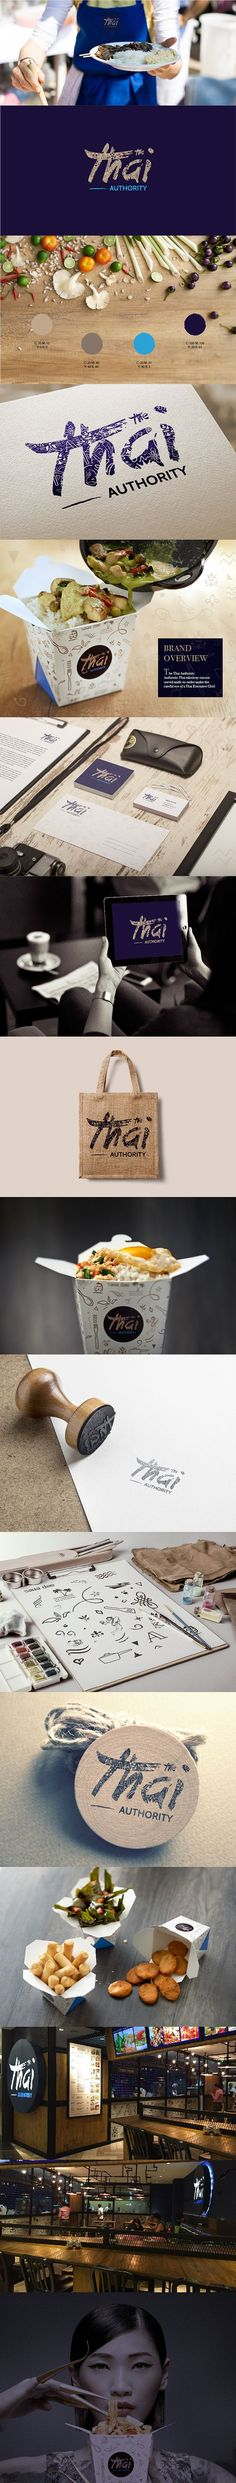 Awesome branding project from Thai Authority Restaurant on Behance by Agata Dondzik. #branding: